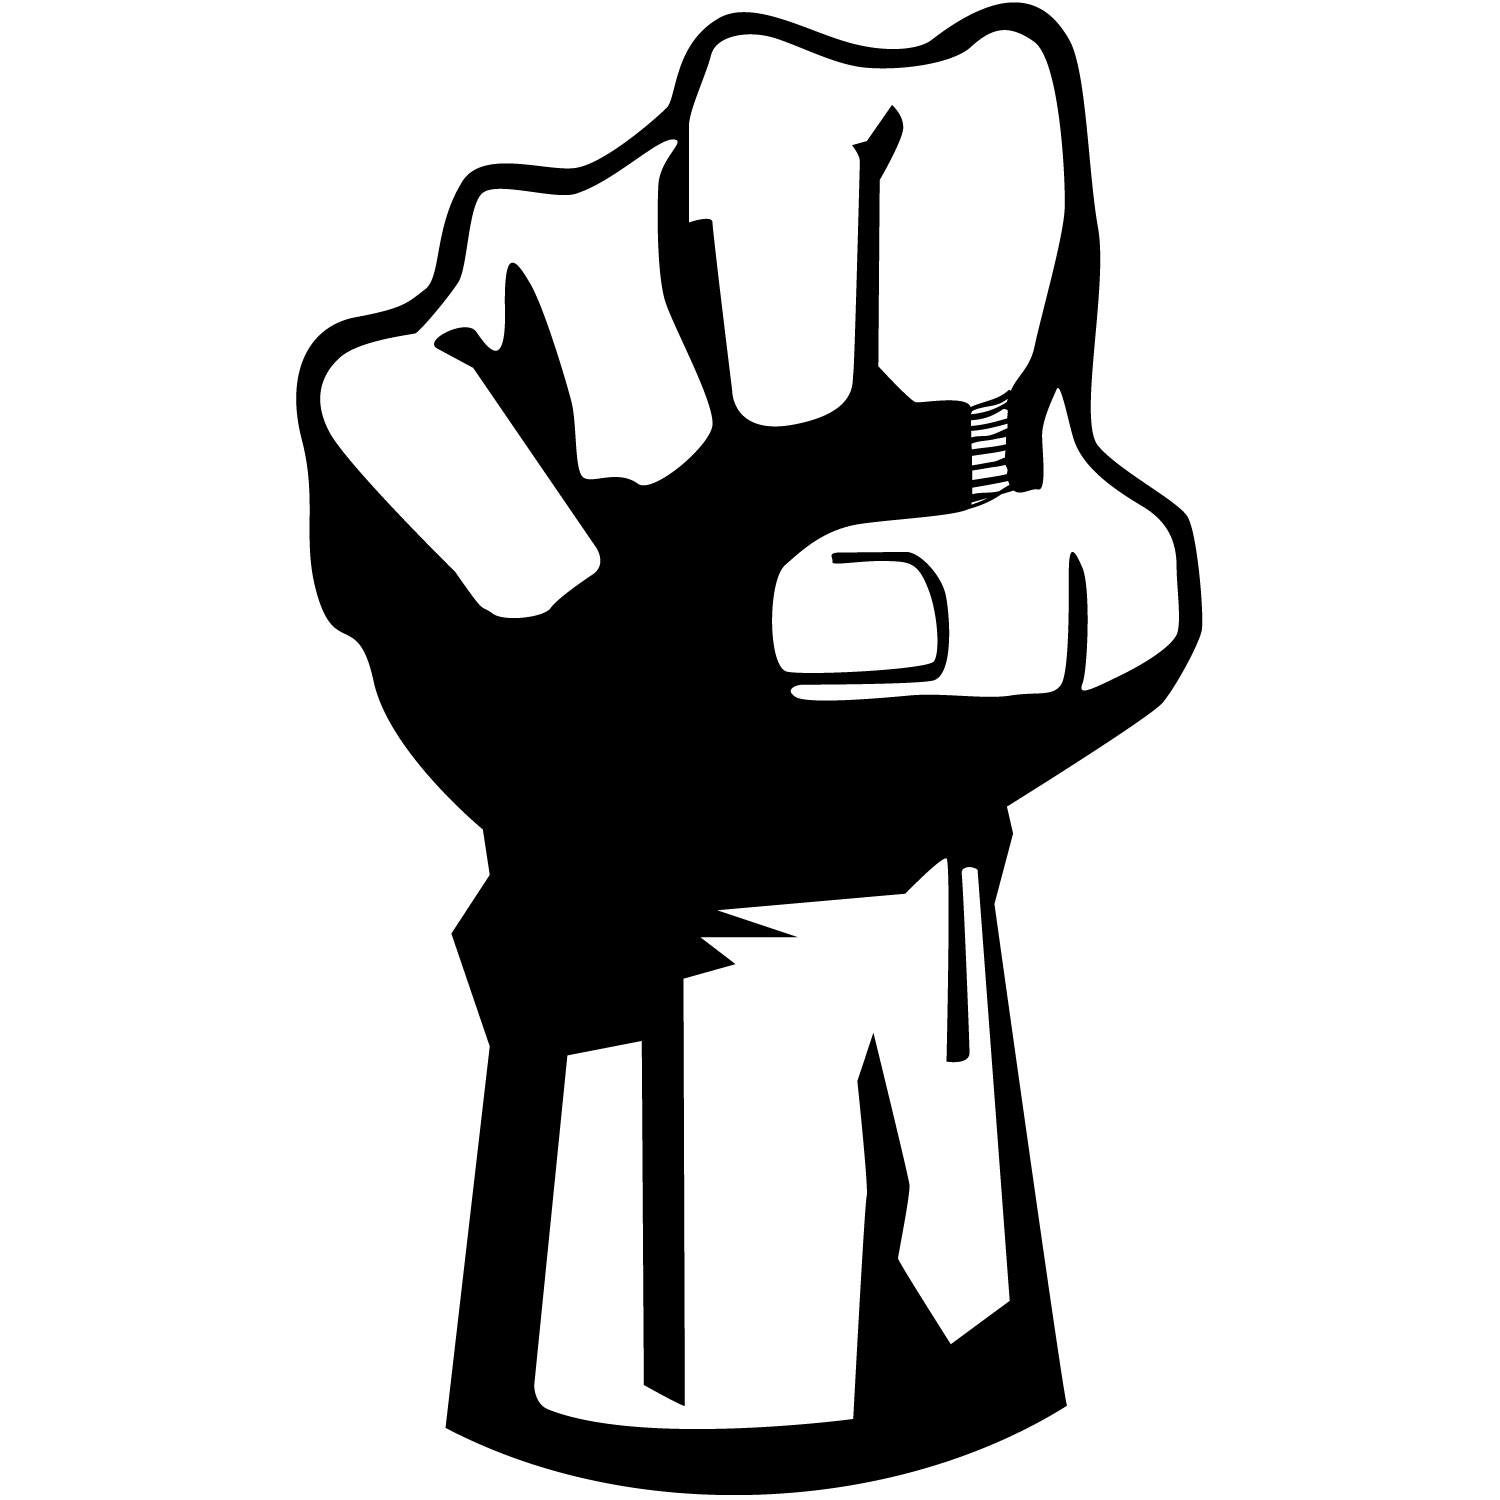 Women s fist pump clipart free clip black and white Free Fist Cliparts, Download Free Clip Art, Free Clip Art on Clipart ... clip black and white